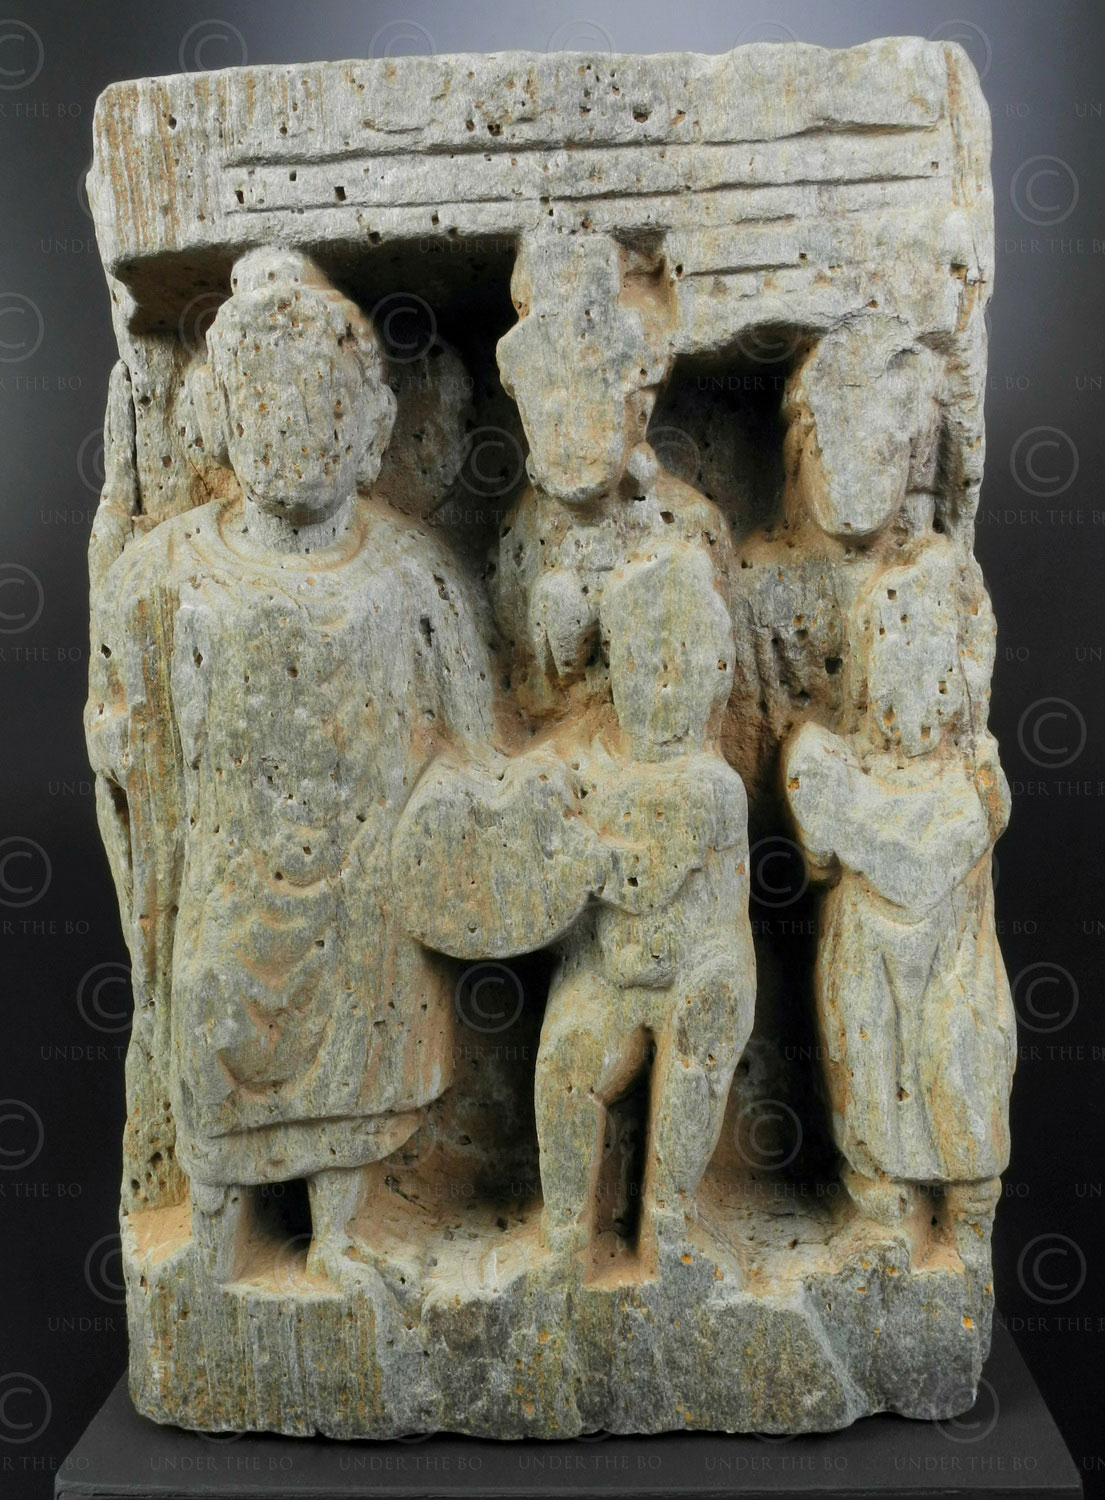 Gandhara frieze fragment PK219B. Swat valley, Pakistan.